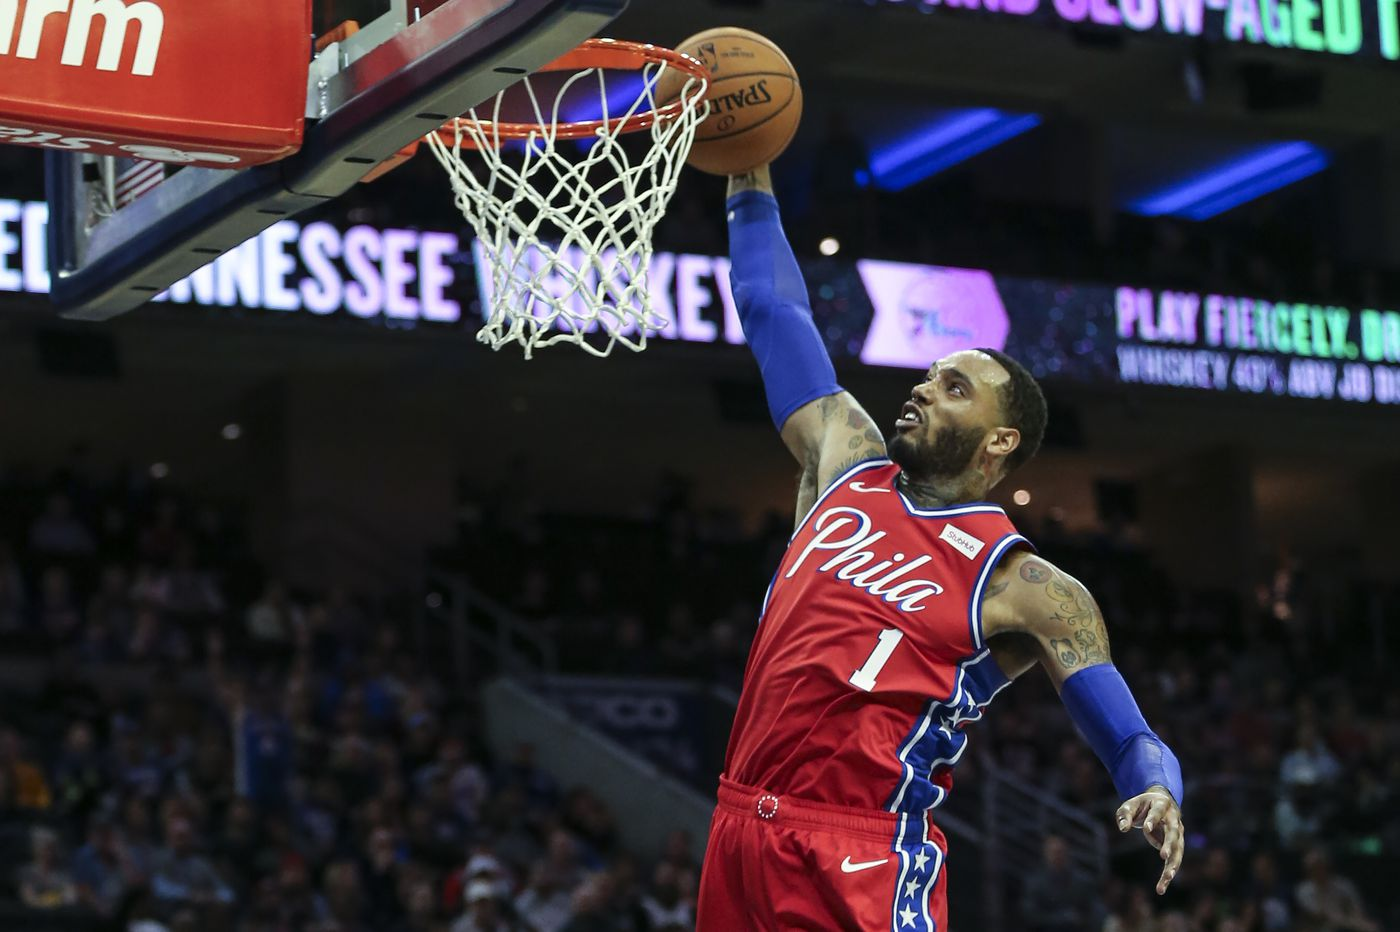 Mike Scott is feeling comfortable heading into first full season with Sixers